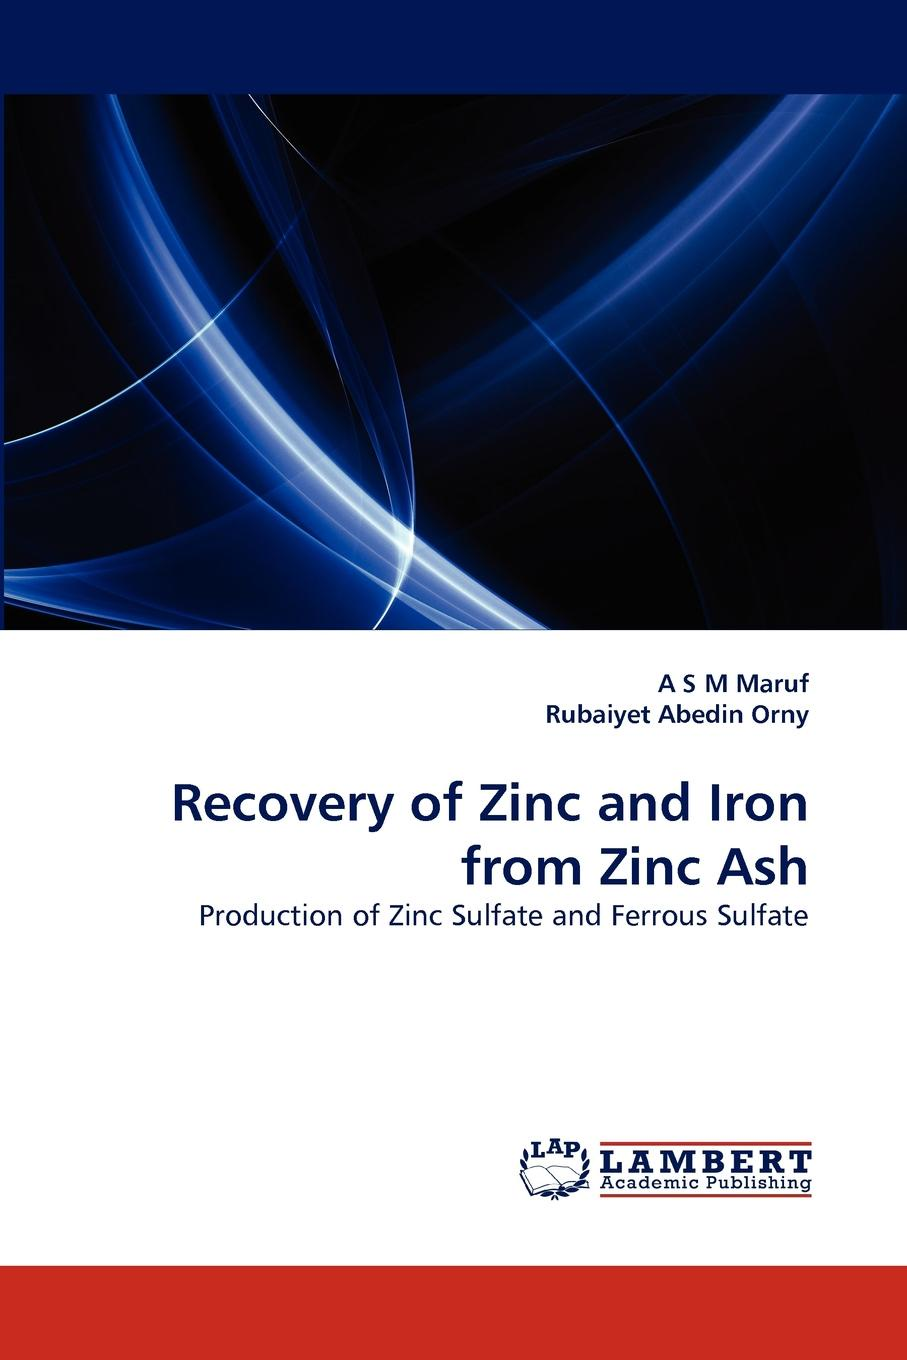 купить A. S. M. Maruf, Rubaiyet Abedin Orny Recovery of Zinc and Iron from Zinc Ash по цене 9189 рублей